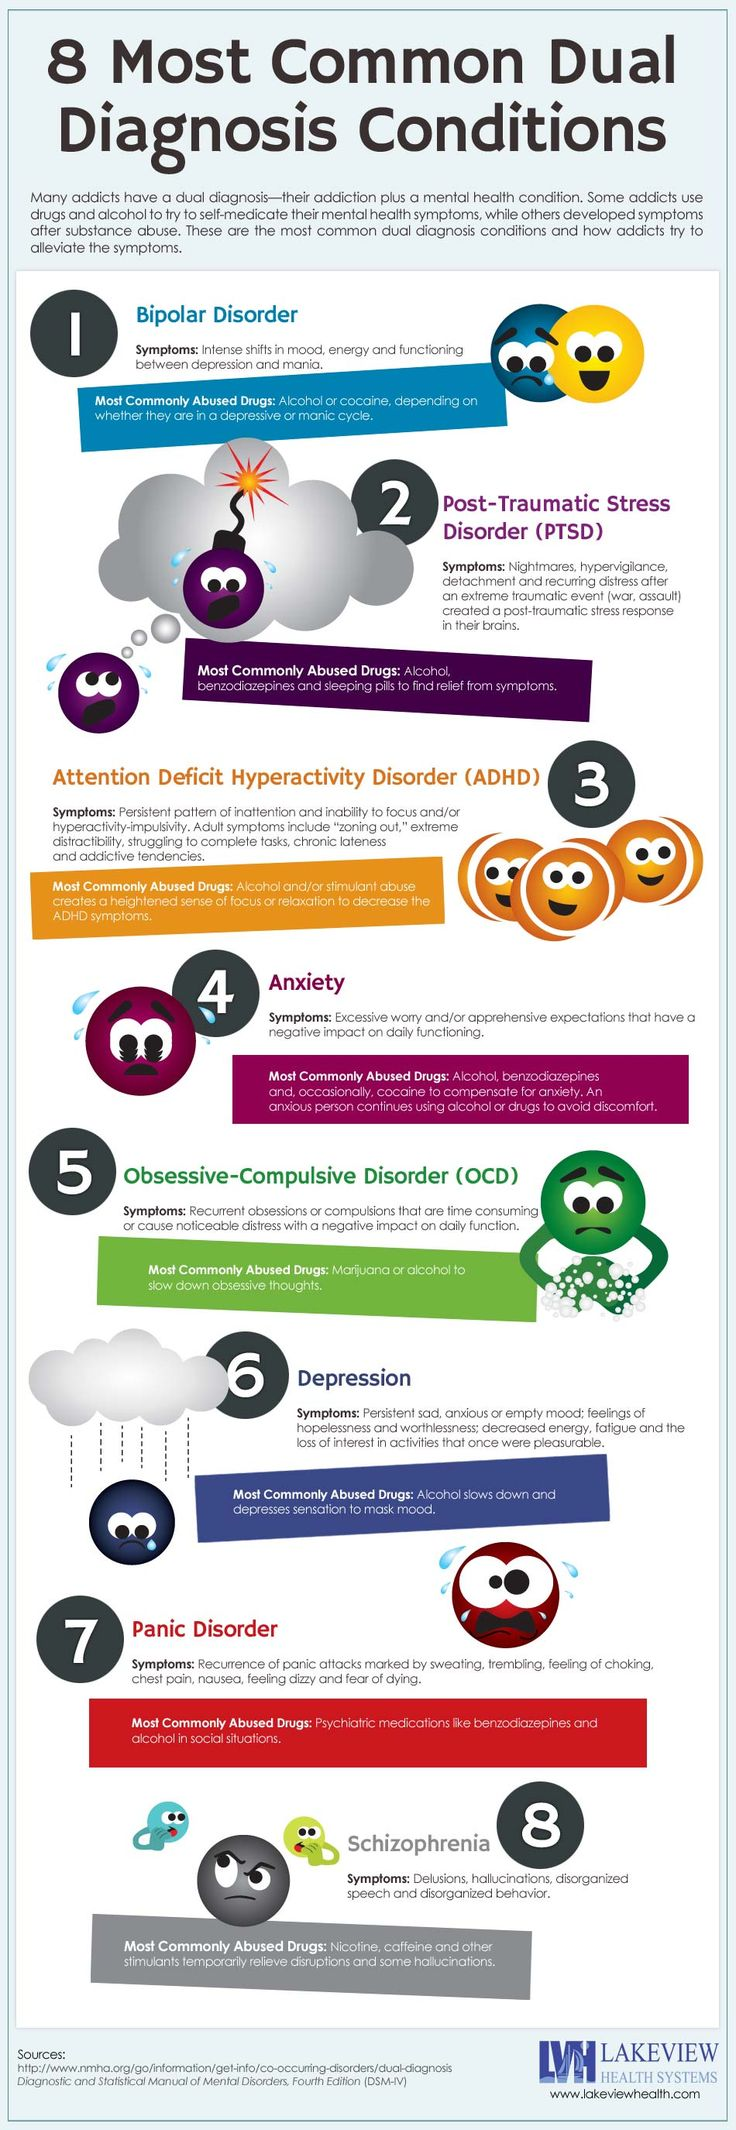 http://healthinfographics.wordpress.com/2013/03/26/8-most-common-dual-diagnosis-disorders    8 diagnosis